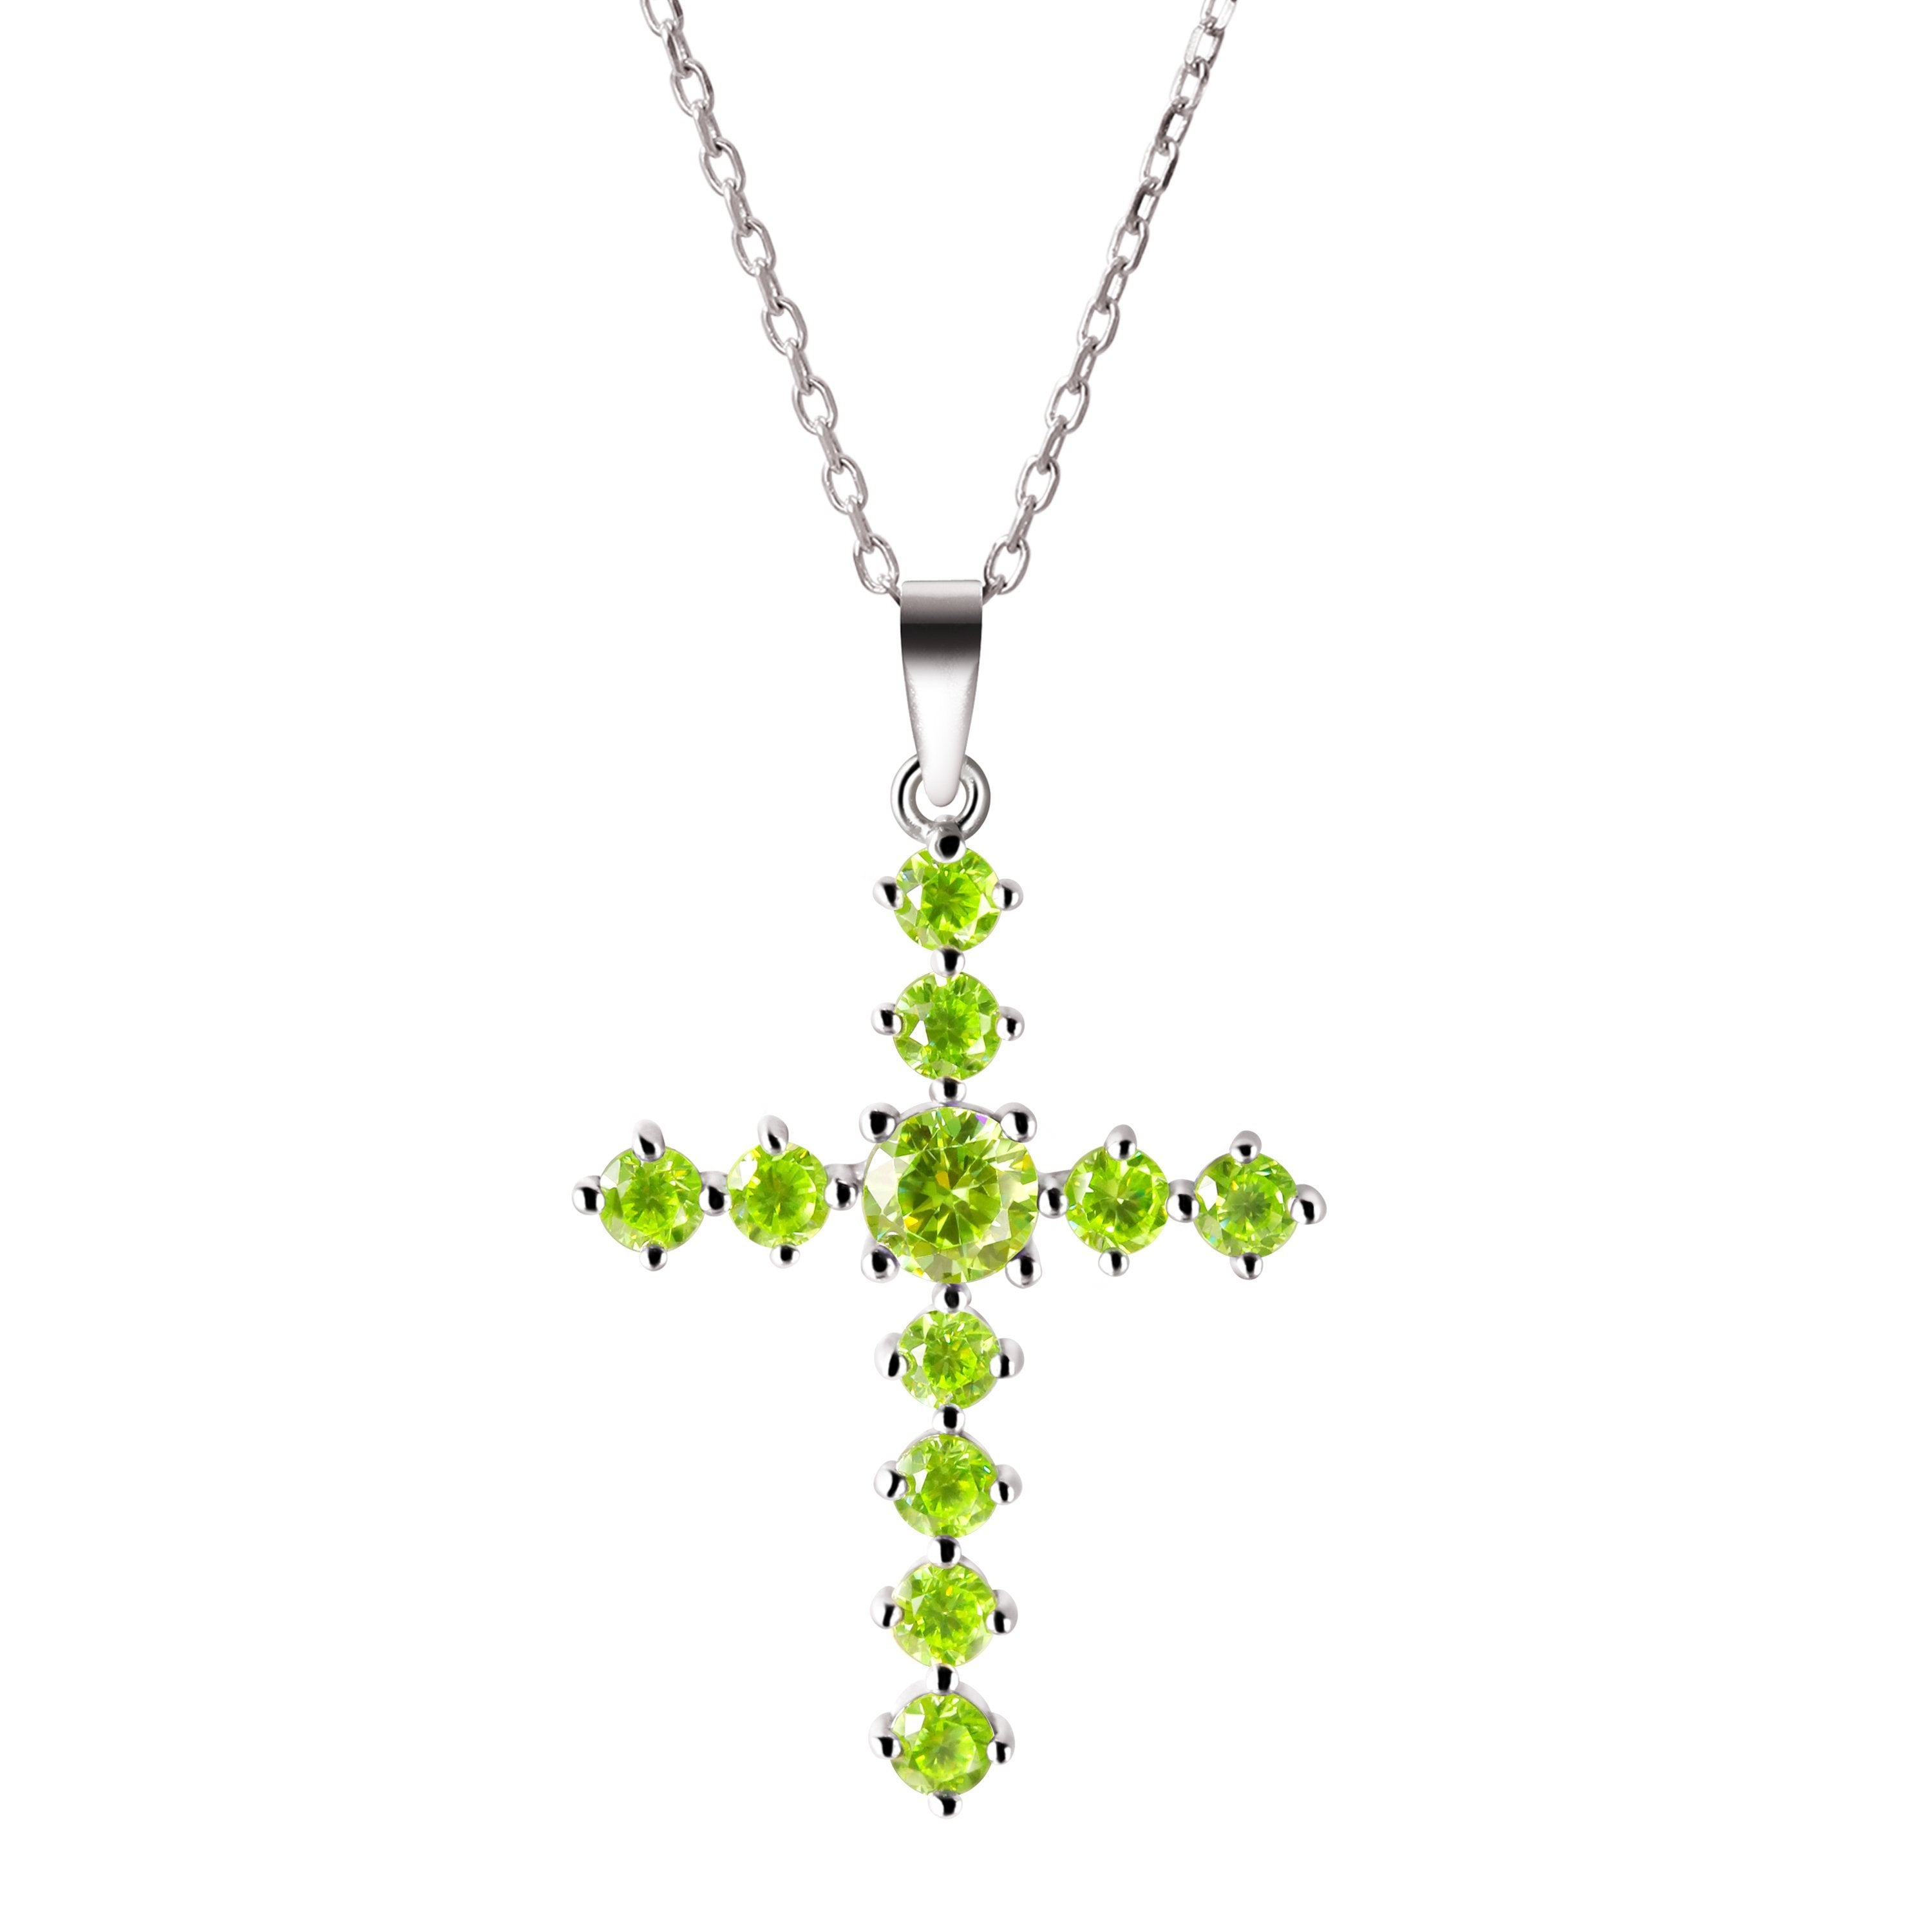 Franki baker dainty delicate peridot coloured crystal gemstone franki baker dainty delicate peridot coloured crystal gemstone sterling silver cross pendant necklace aloadofball Image collections